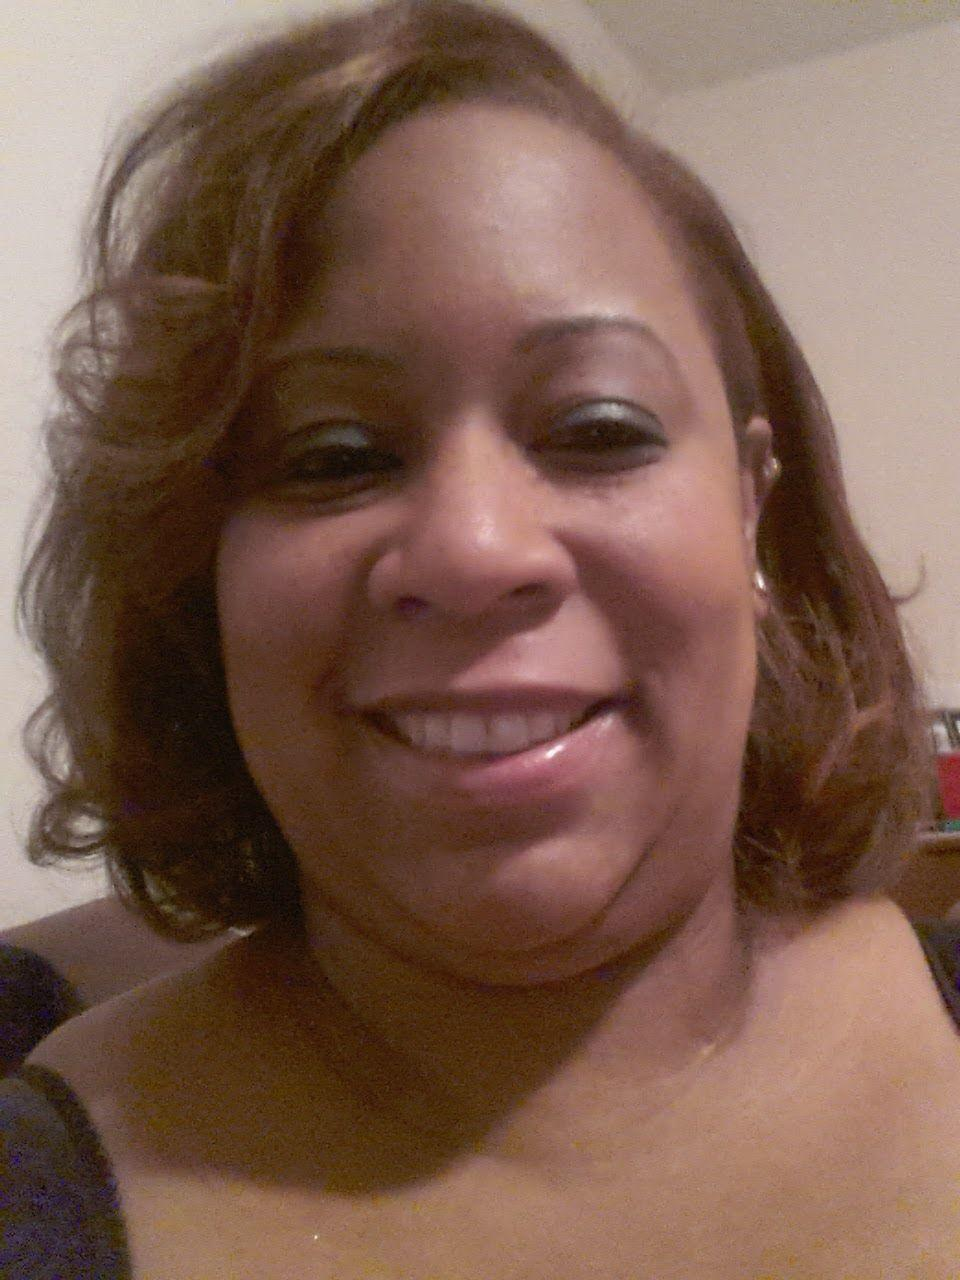 meet robins singles Miranda_f is a single 26-year-old sugarbaby located in warner robins,georgia looking for a sugardaddy browse thousands of picture personal ads at sugardaddyformecom.